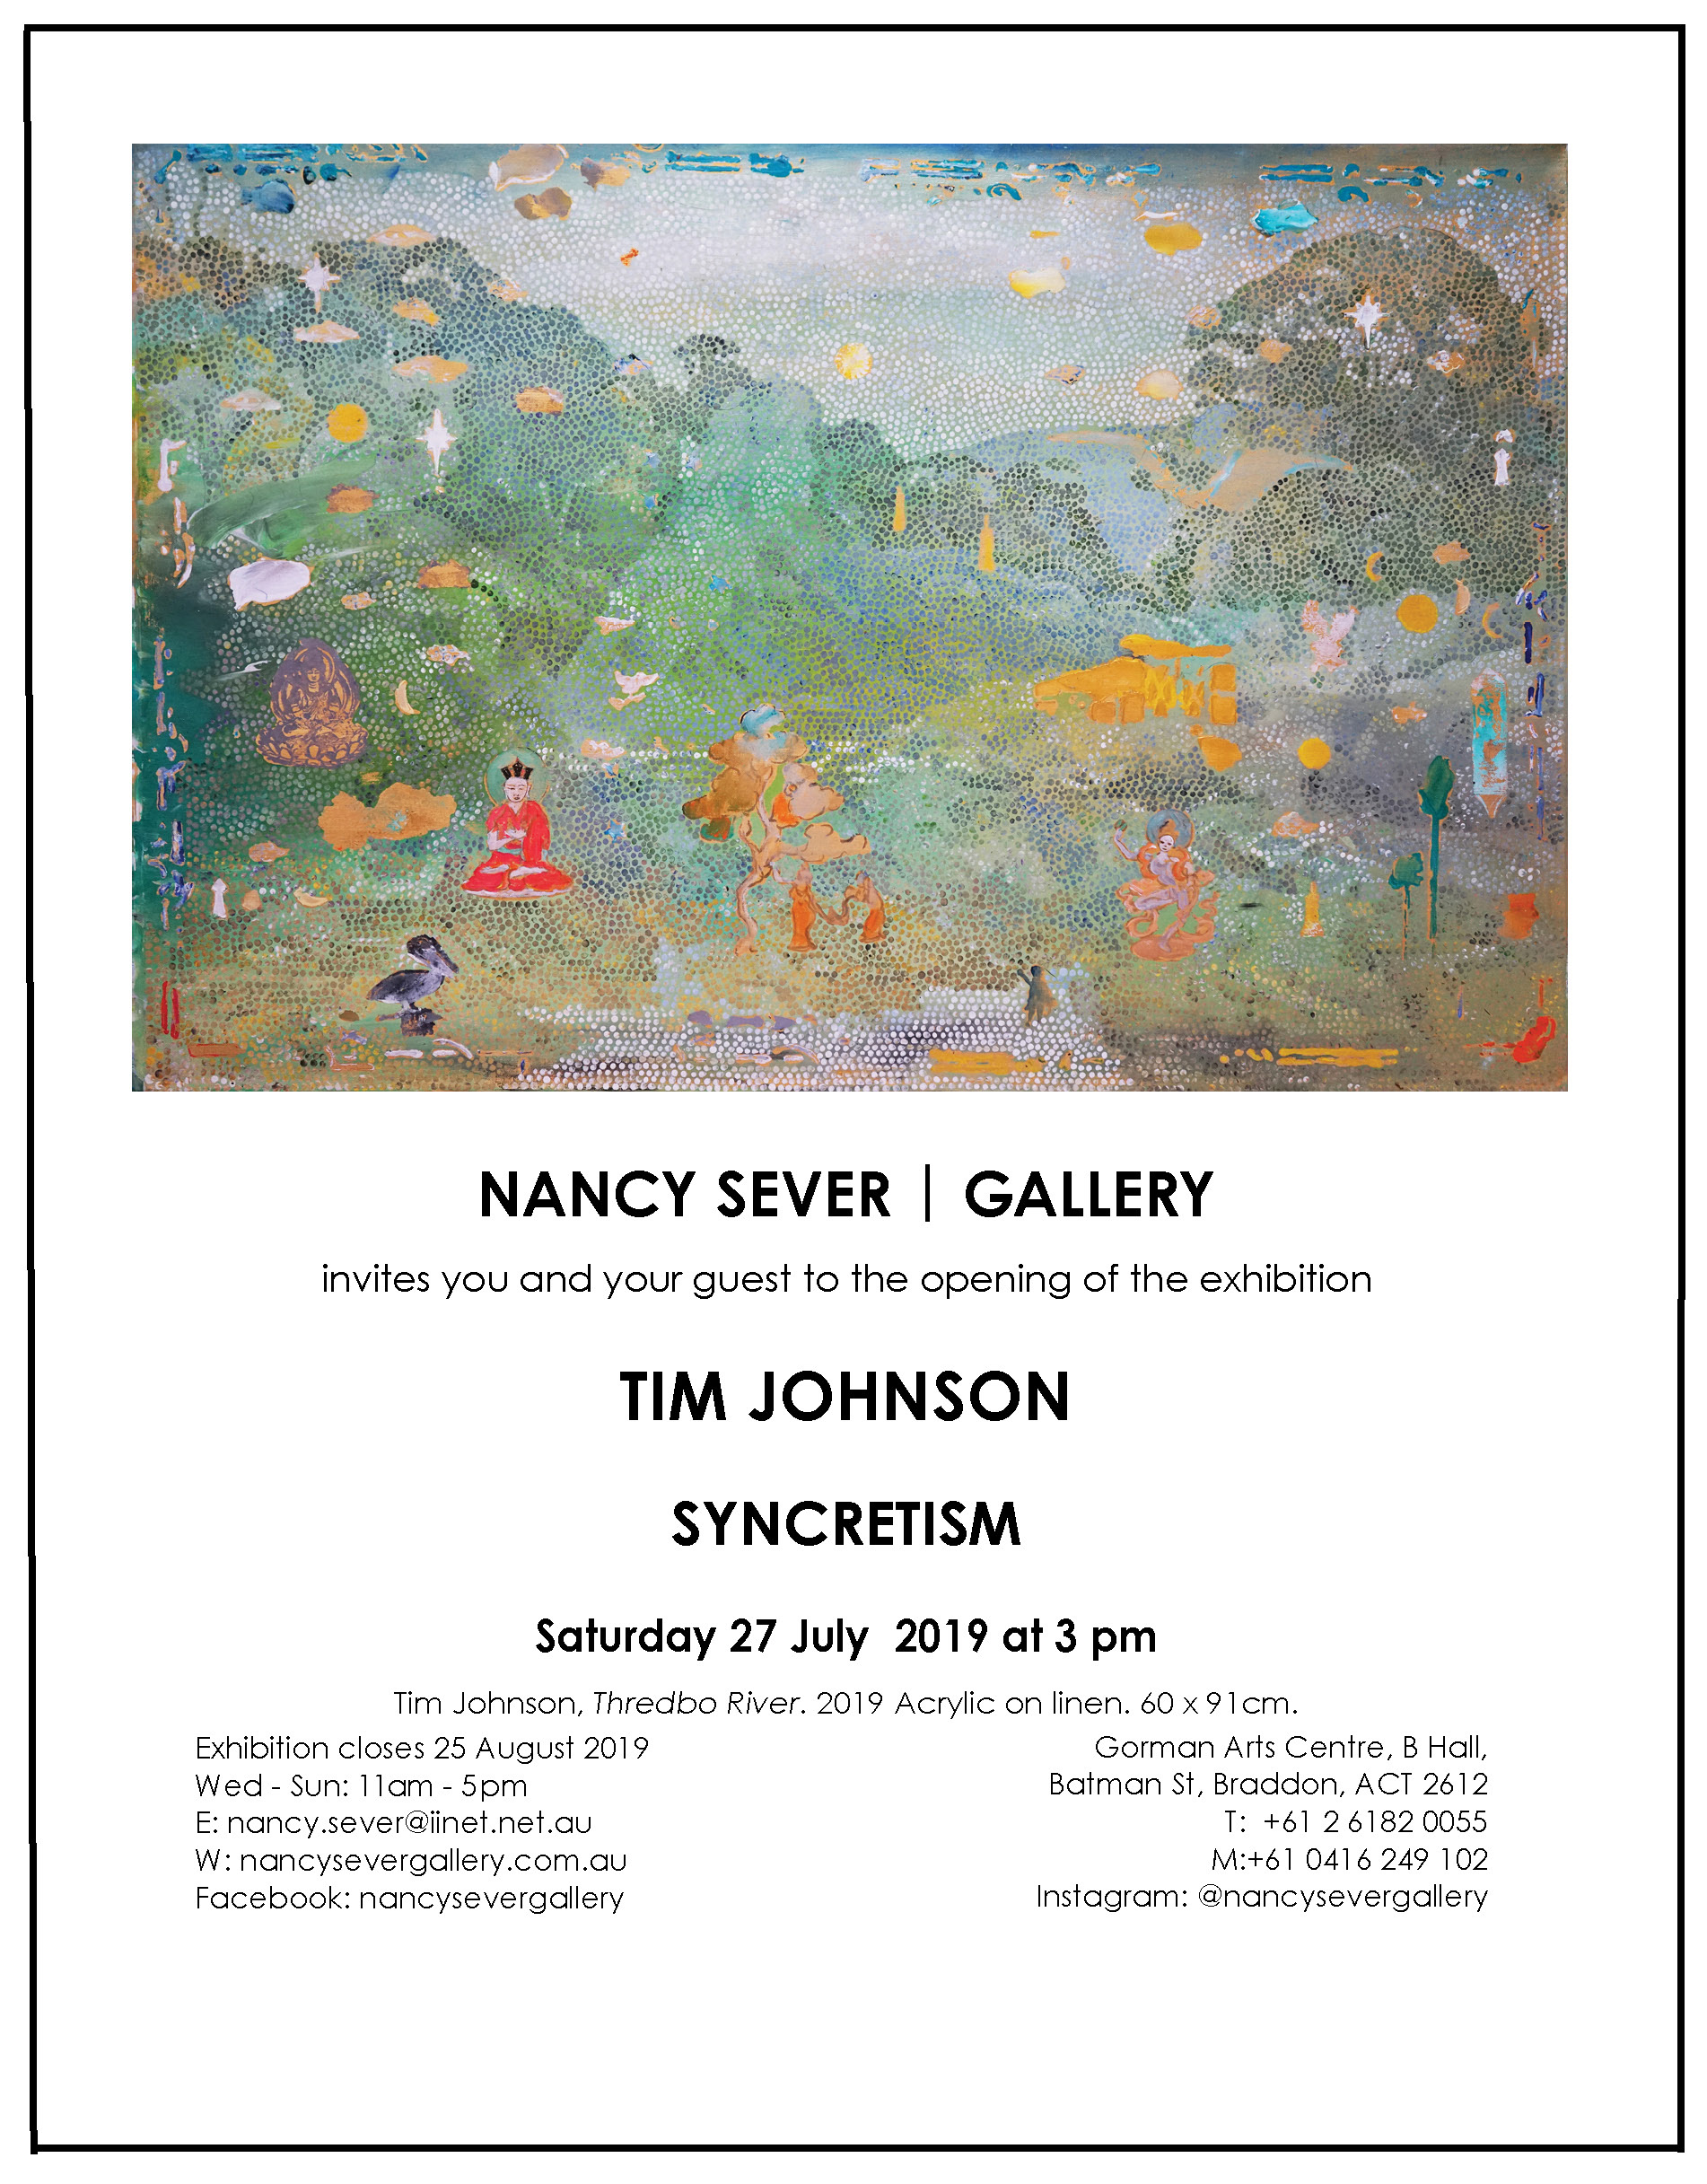 NSGTim Johnson exhibition email invitation (002).jpg